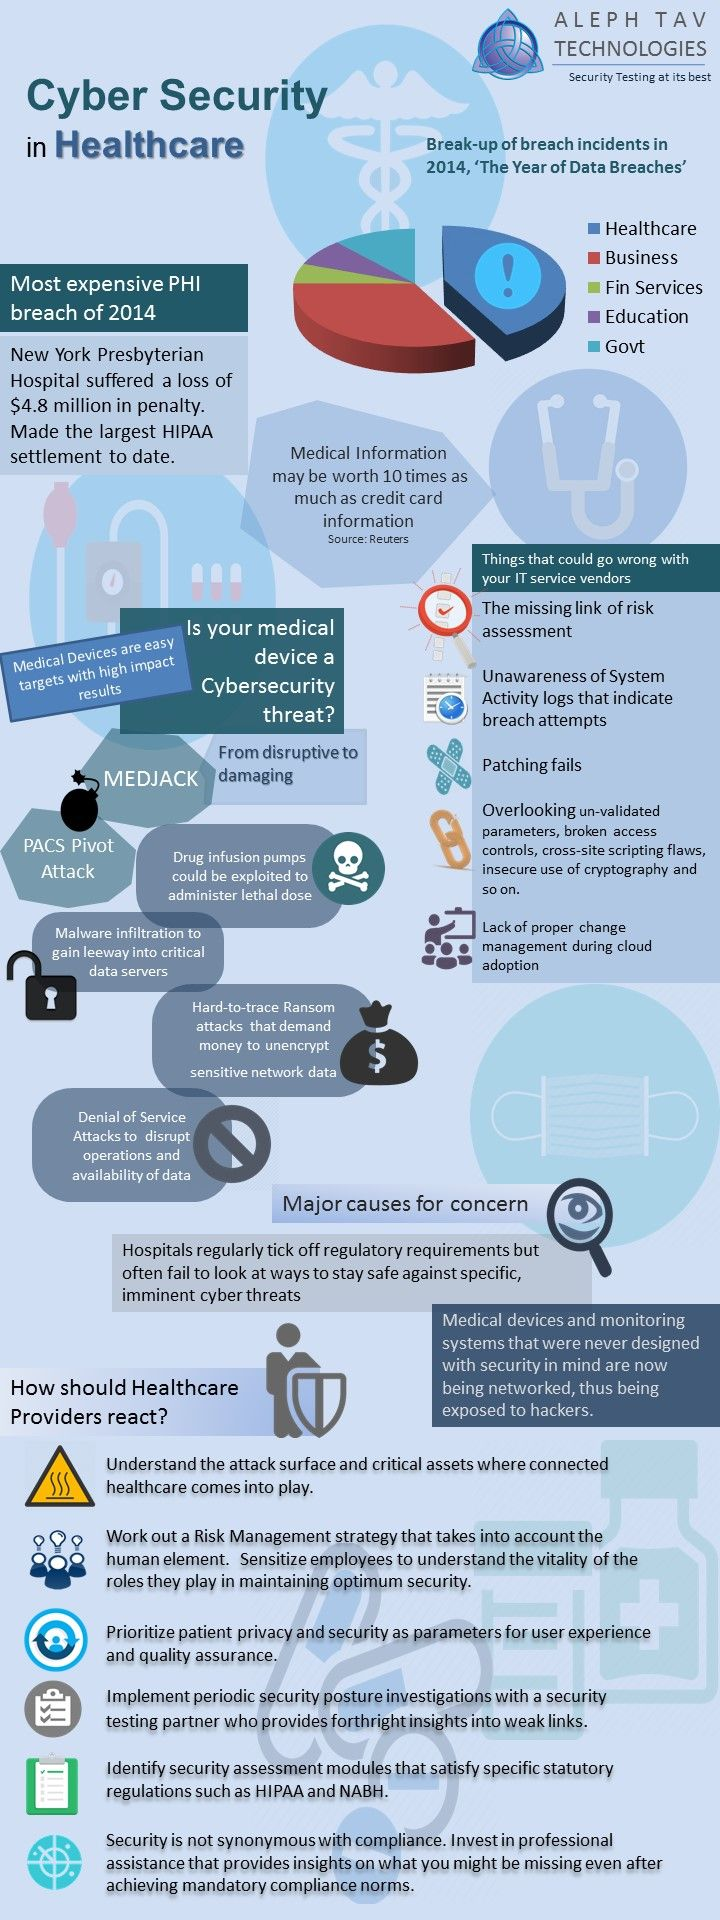 Cyber security in the healthcare industry an infographic